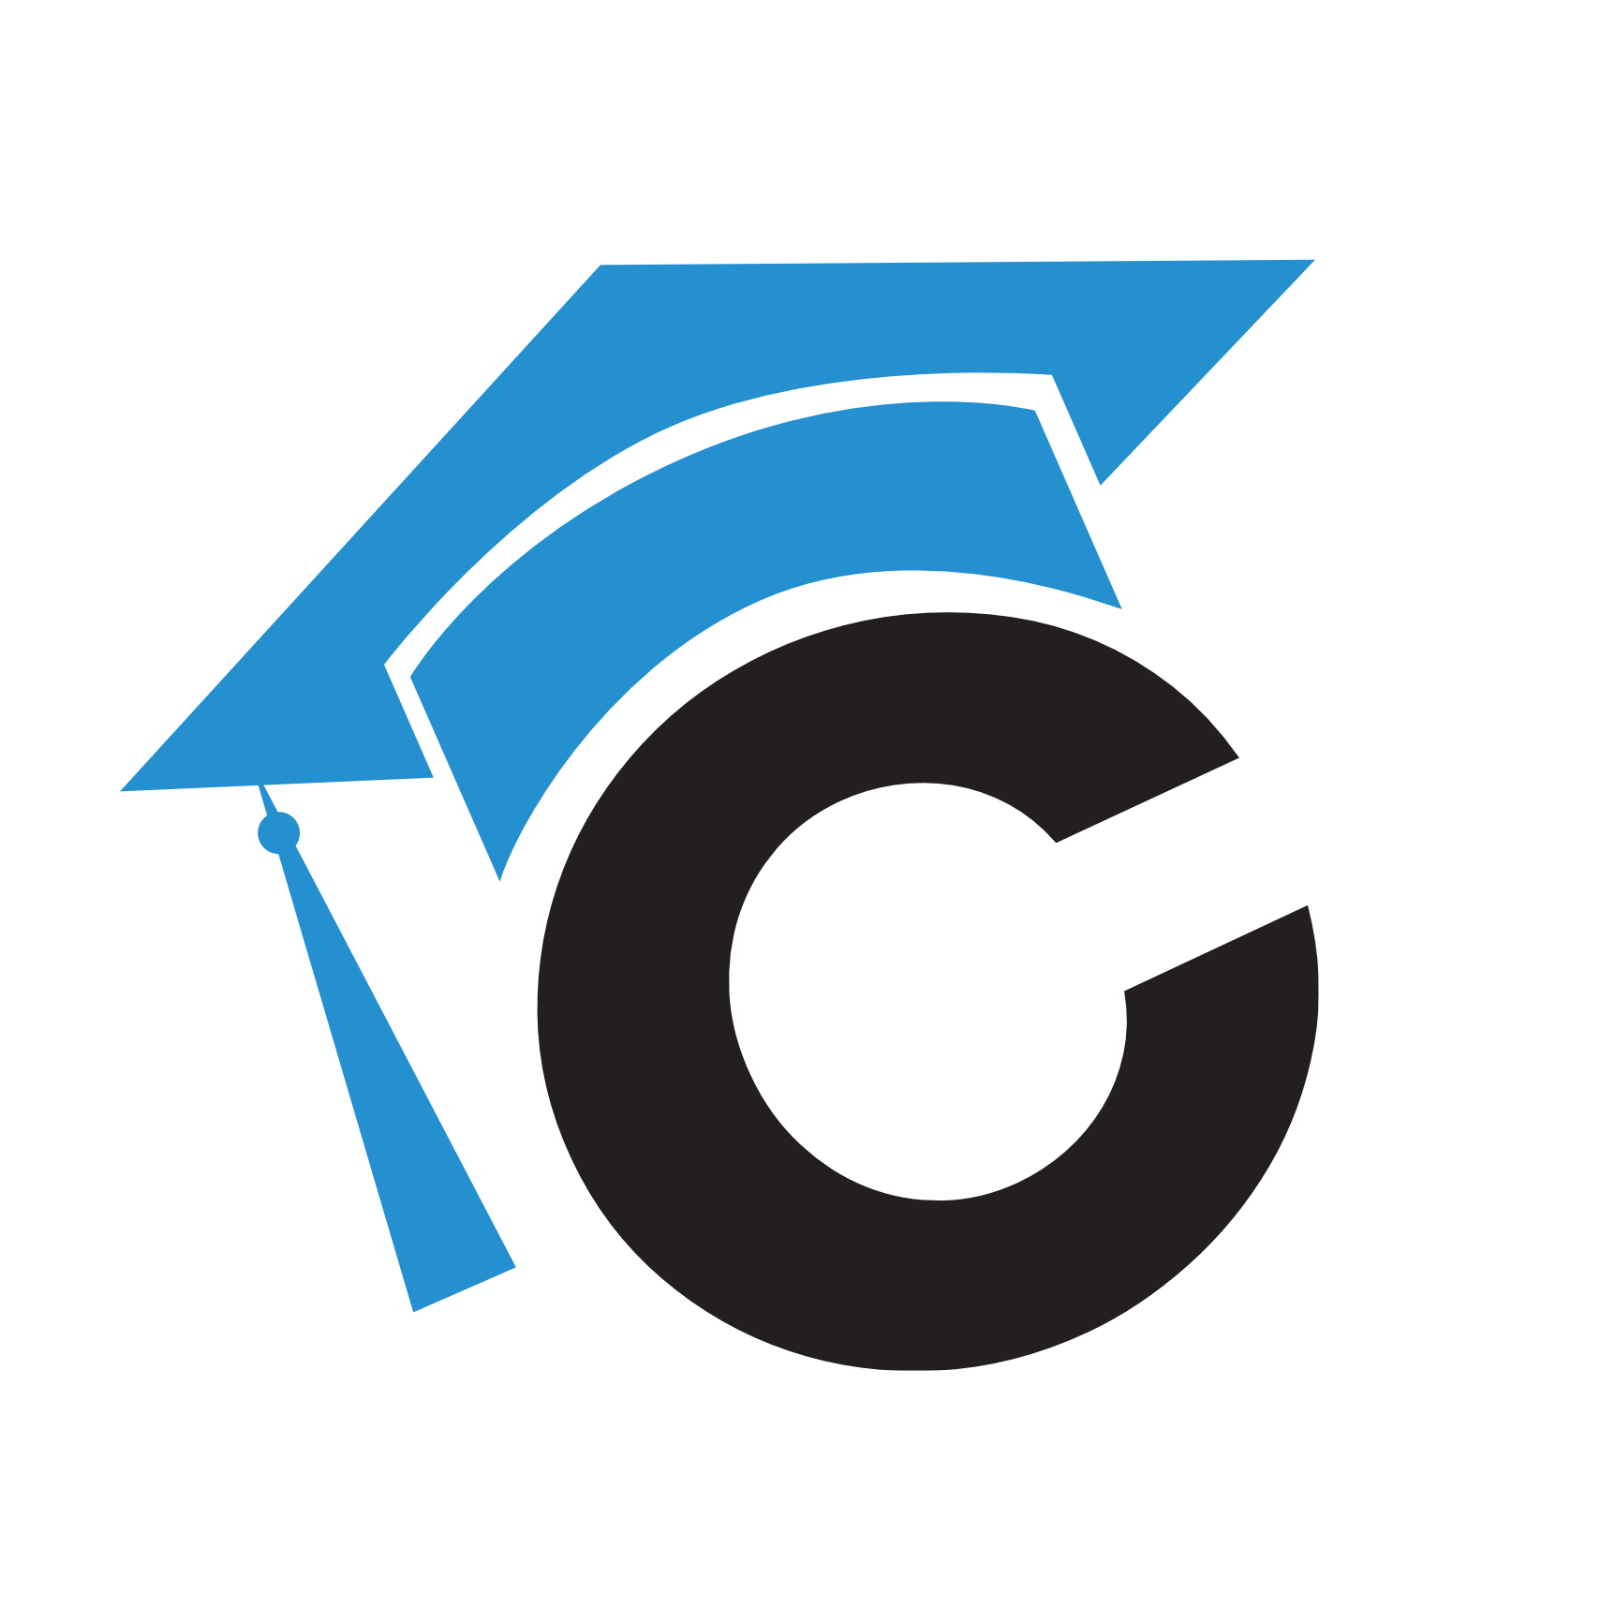 Campus course logo